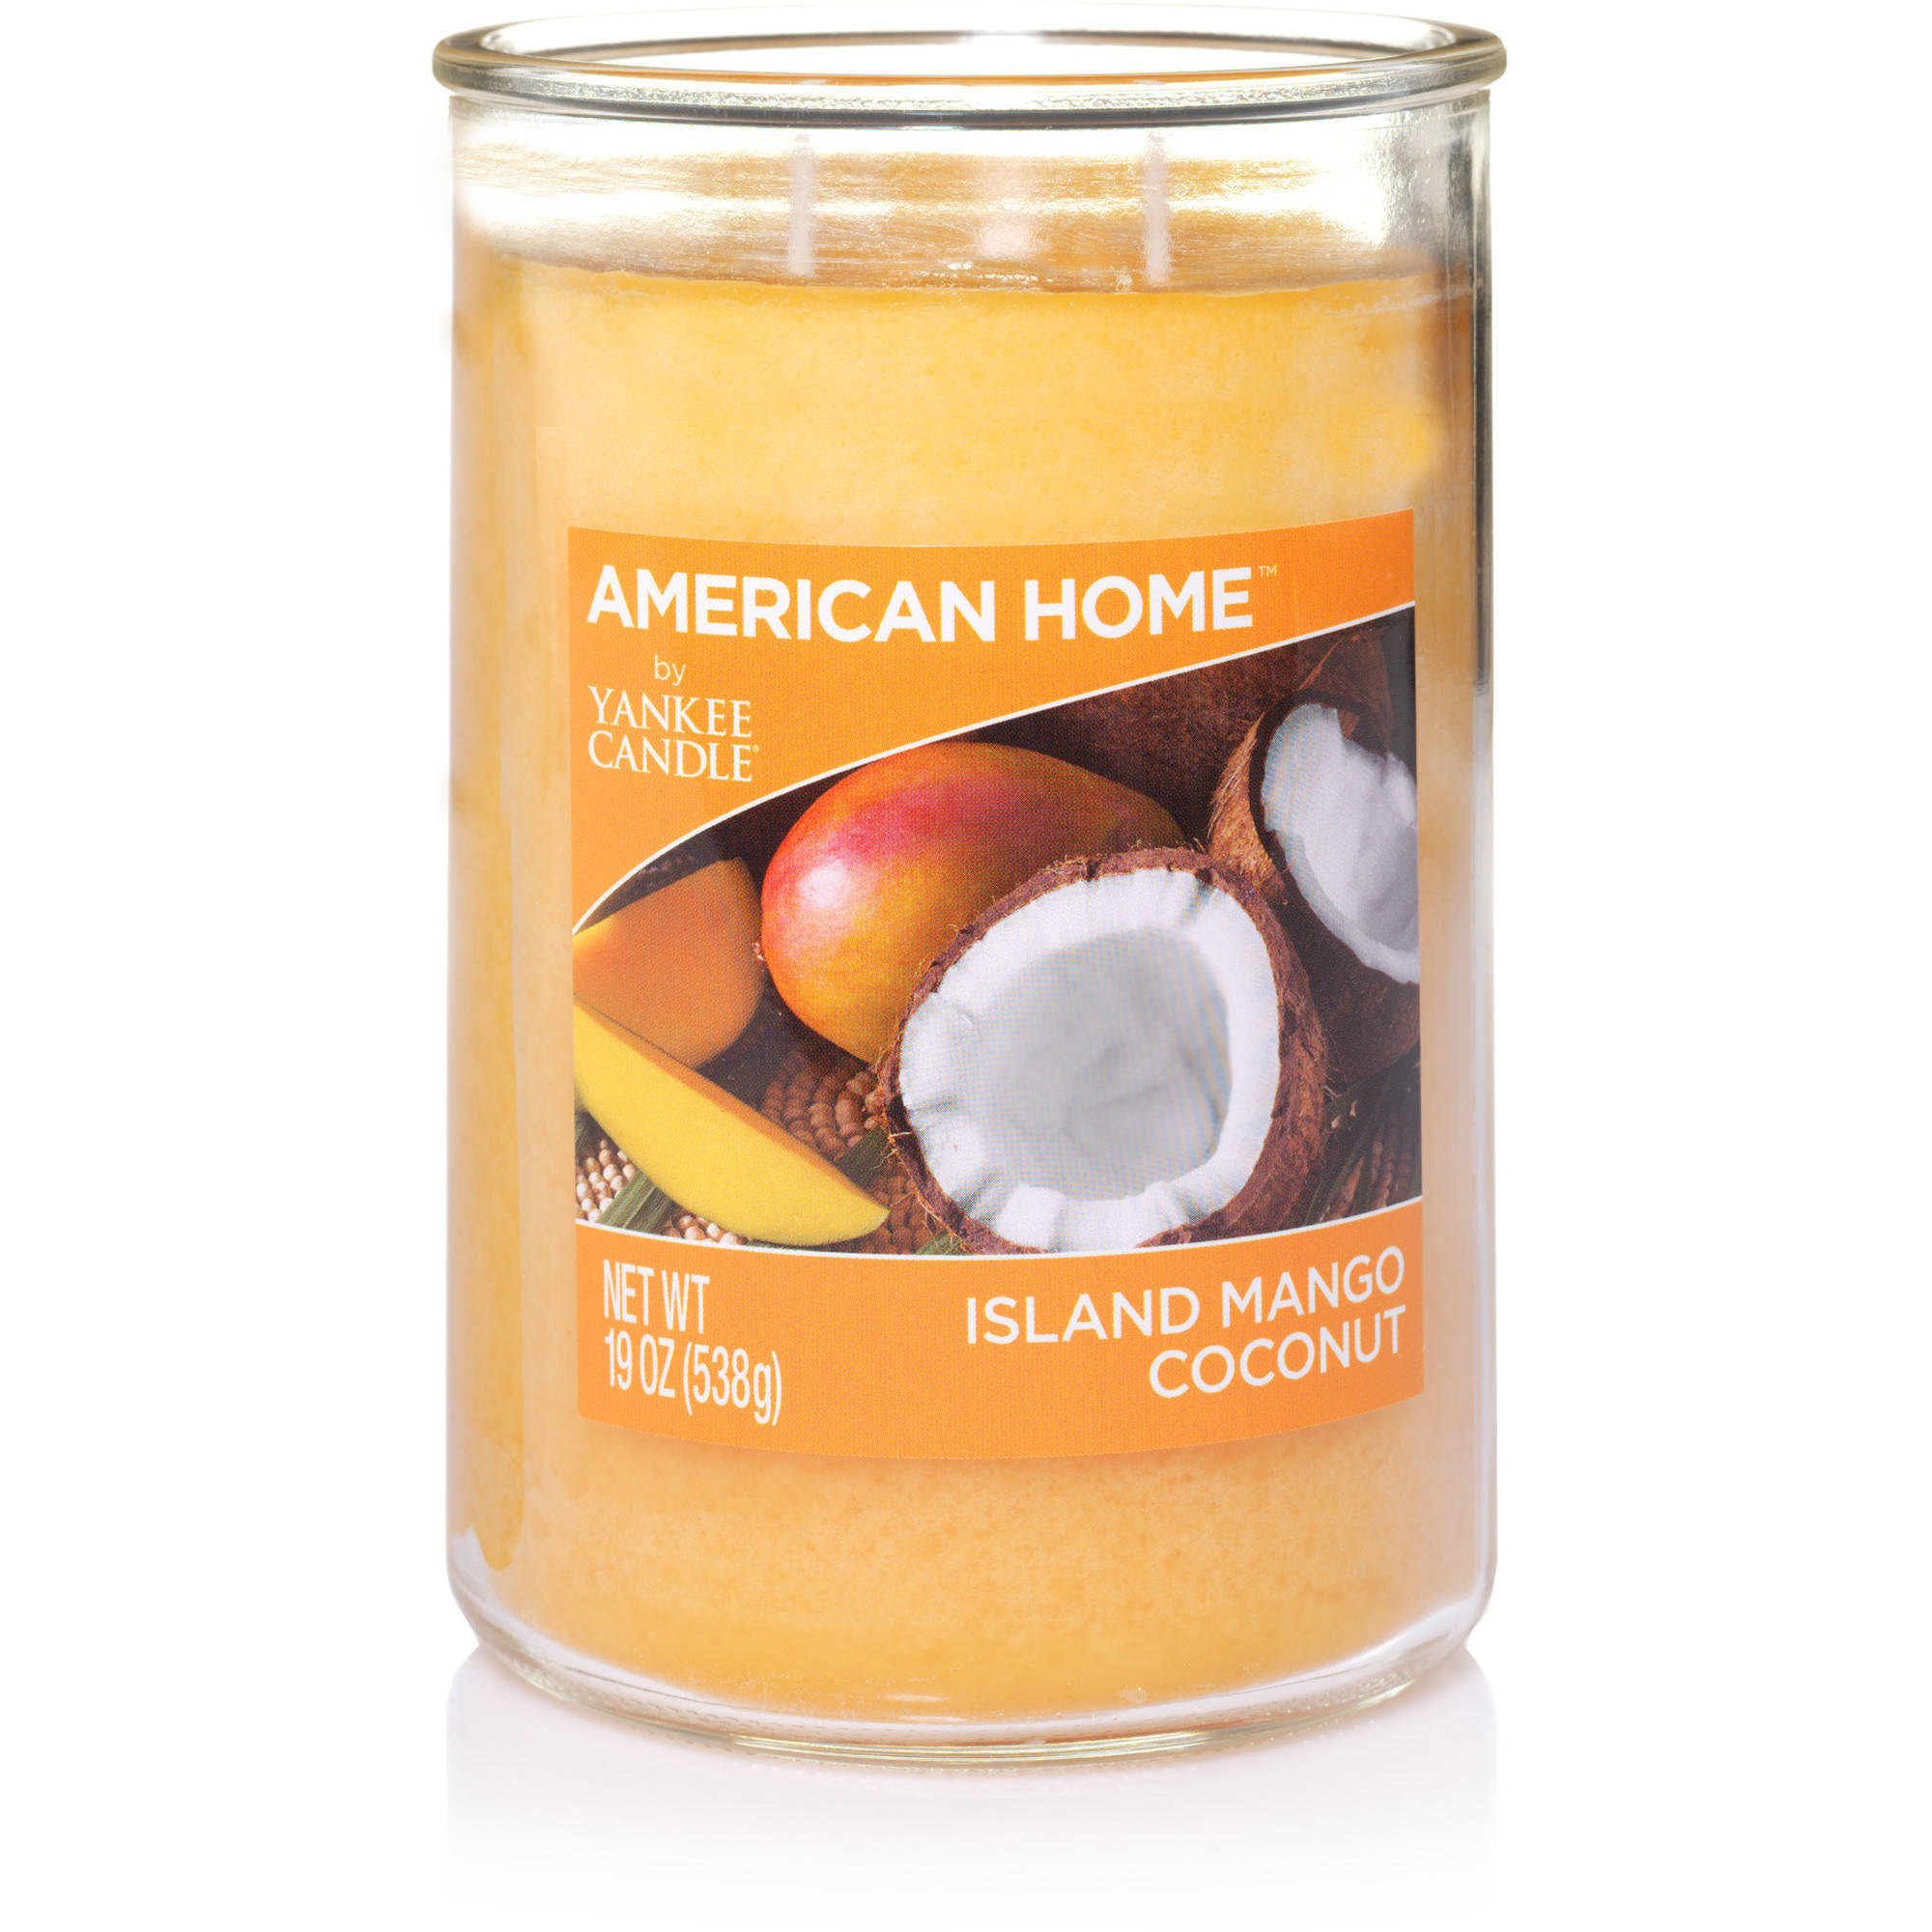 American Home by Yankee Candle Island Mango Coconut, 19 oz Large 2-Wick Tumbler